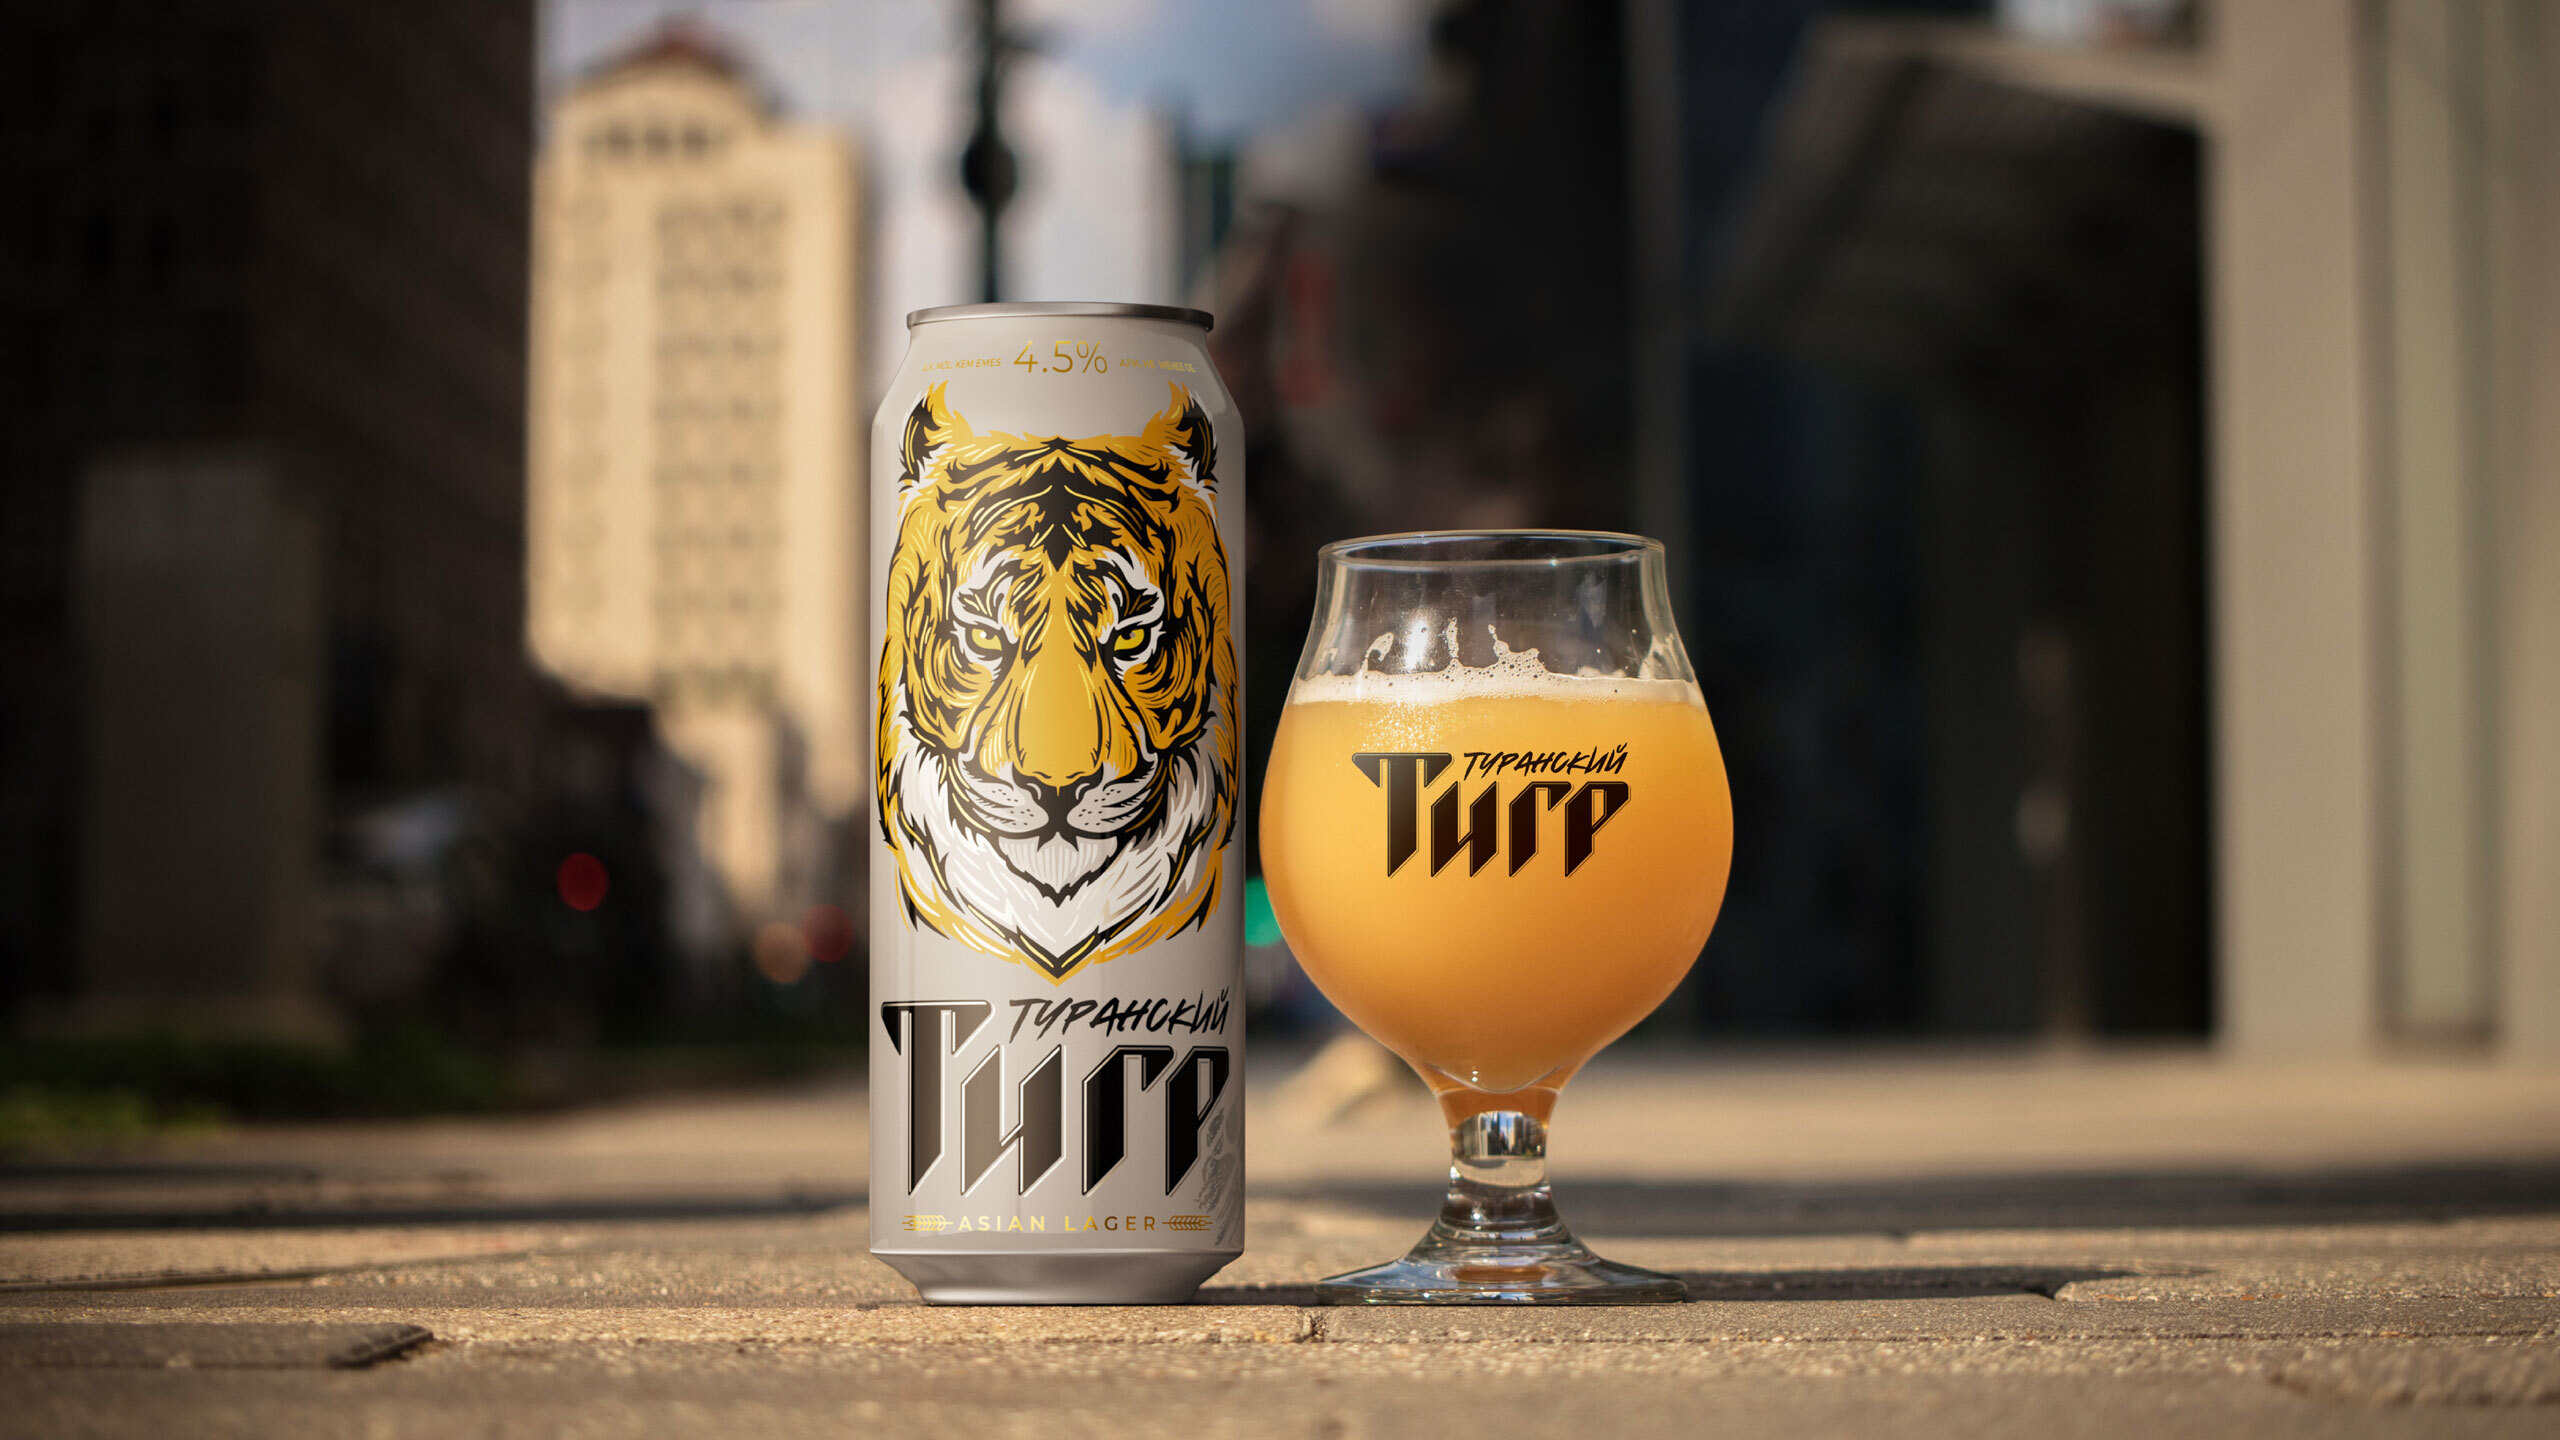 Dozen Agency Creates Beer Packaging Design for Asian Lager Turanian Tiger from Almaty Brewery